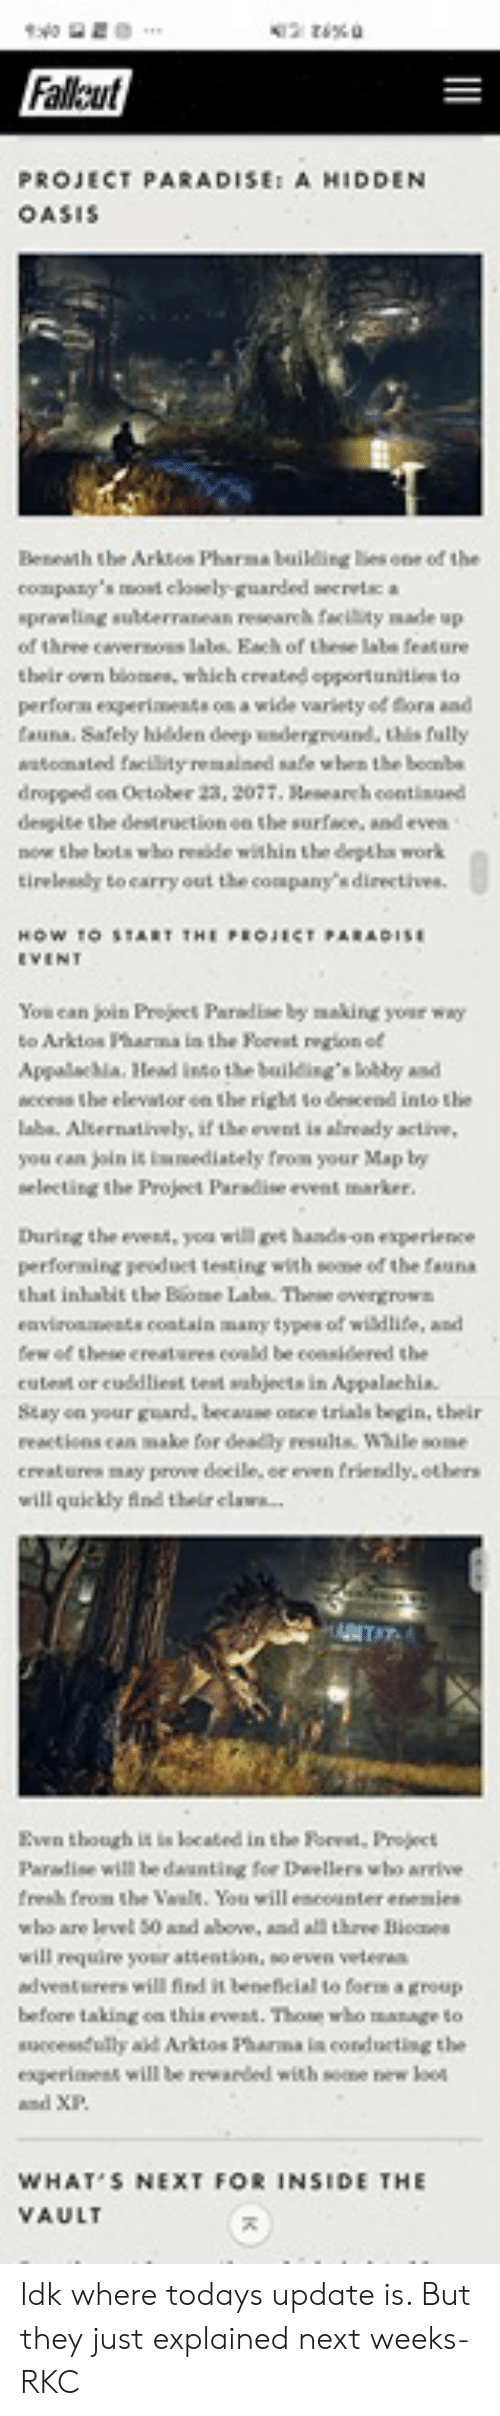 Fresh, Head, and Memes: Falleut  PROJECT PARADISEt A HIDDEN  OASIS  Benewth the Arktes Pharma baikling lies one of the  coapany's mot clely-guarded secretca  eprawling subterranean research facility made up  of three cevernoss  labe feature  labe. Each of these  their own blomes, which created opportunitles to  perform experinests ons a wide varlety of Gora and  tauna. Safely hikldden deep indergroand, this fally  watomated facility remained safe when the bobe  dropped on October 23, 2077, eseareh contiaued  despite the destruction en the surface, and ever  now the bols who reside within the deptha work  tirelessly to carry out the company'sdirectis  You can join Projeet Pardise by making your way  to Arktos Pharma in the Porest regtion of  Appalachia. Head into the building's lobby and  ccess the elevalor en the rigl to descend into the  laba. Alternatiely, if the event is already active,  you can joln it wsediately from your Map by  selecting the Projeet Paradise event marker  During the eveat, you will get hands on experience  performing peoduet testing wihh soone ed the faana  that inhabit the Biome Labs These overgrows  eaviroseats contain many types of widdlife, and  cutest or cuddliest test wabjects in Appalachia  Stay on your guard, because once trials begin, their  reactions can make for deadly results. While some  creatures may prove docile, cr even f  riendly.others  will quickly ind theirclaw.  Even thouagh it in located in the Forest, Project  Paradise will be daunting foe Dwellers who arvive  fresh from  who are level 50 and above, and all three Bioces  the Vwals. You wi  will require your attention, so even vetere  will find it beneficial to form a group  dvente  before taking on this event. Those who manage to  successdully ad Arktos Pharma ia conducting the  esperiment will be rewarded with seene bnew loos  WHAT S NEXT FOR INSIDE THIE  AULT Idk where todays update is. But they just explained next weeks-RKC